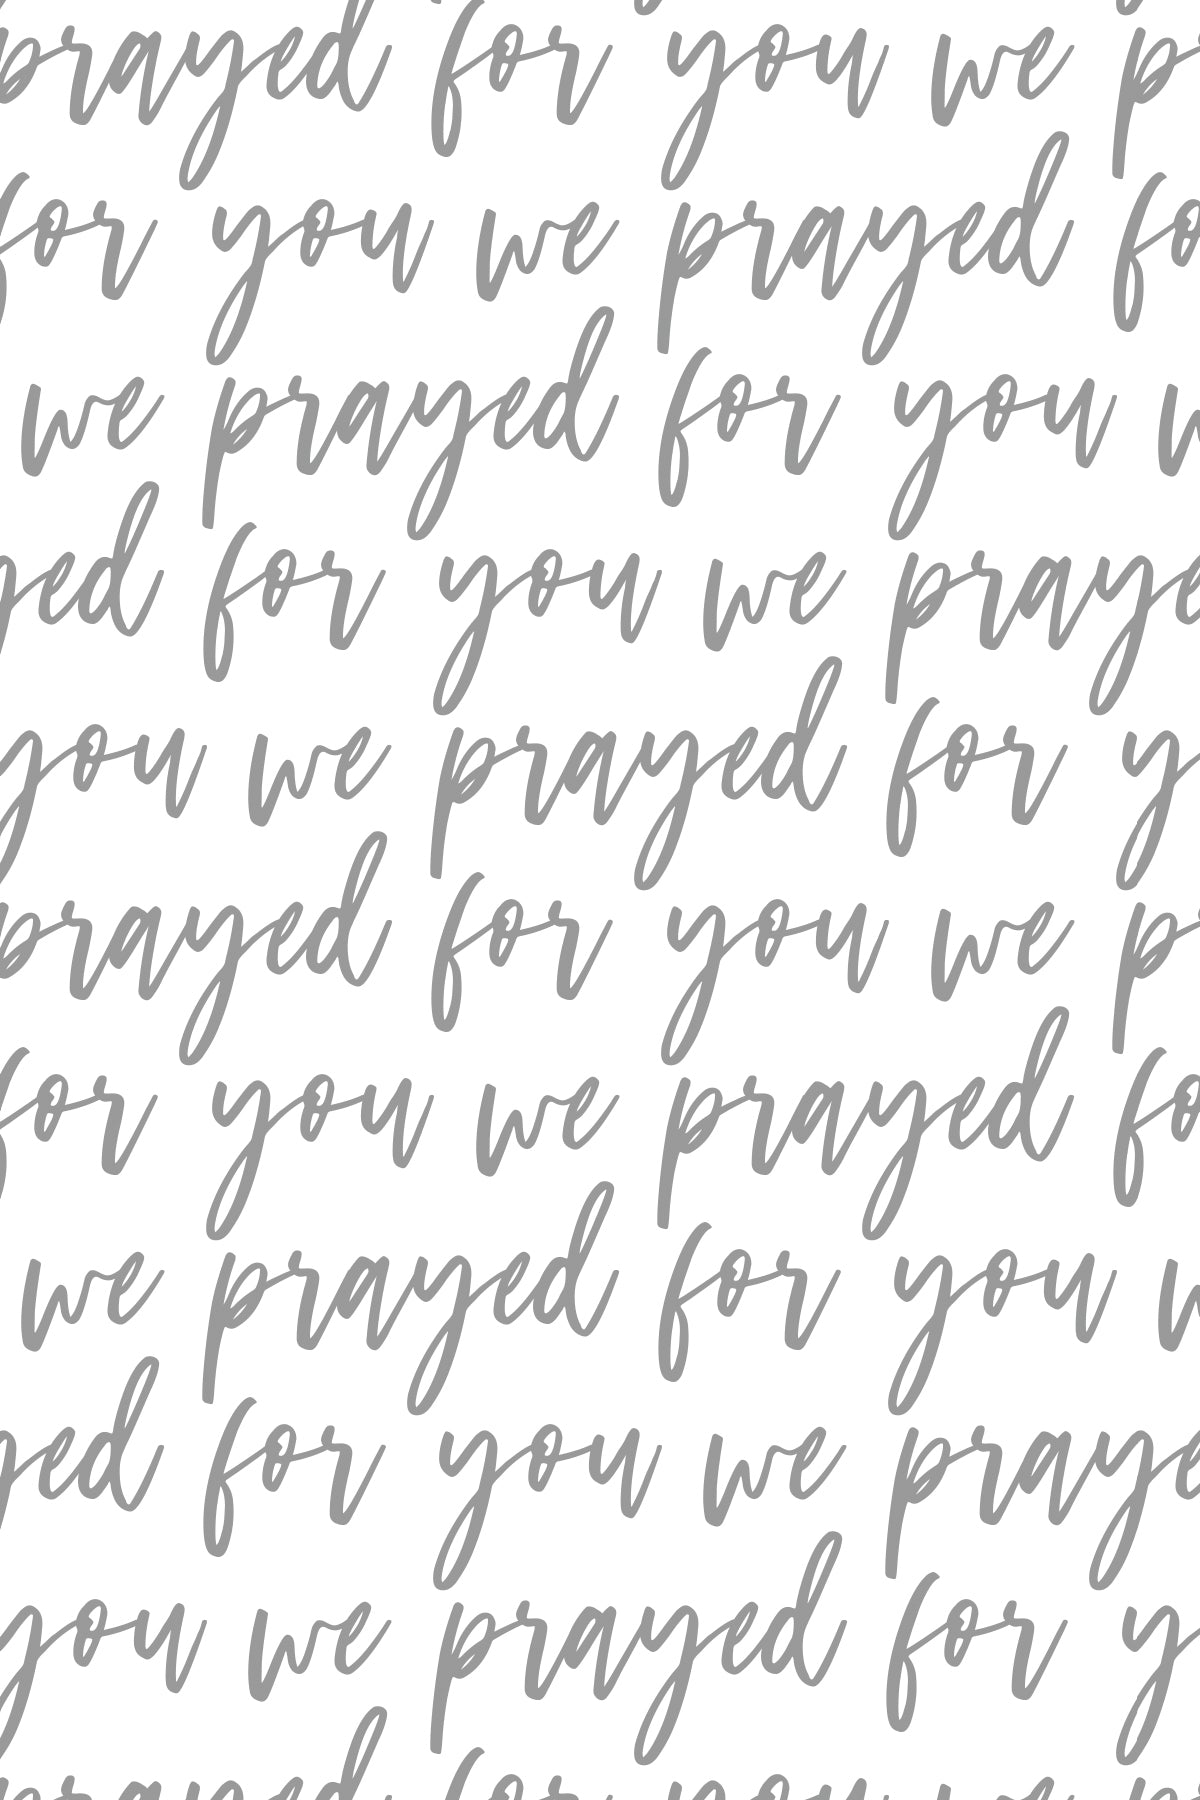 We Prayed For You Gray Download